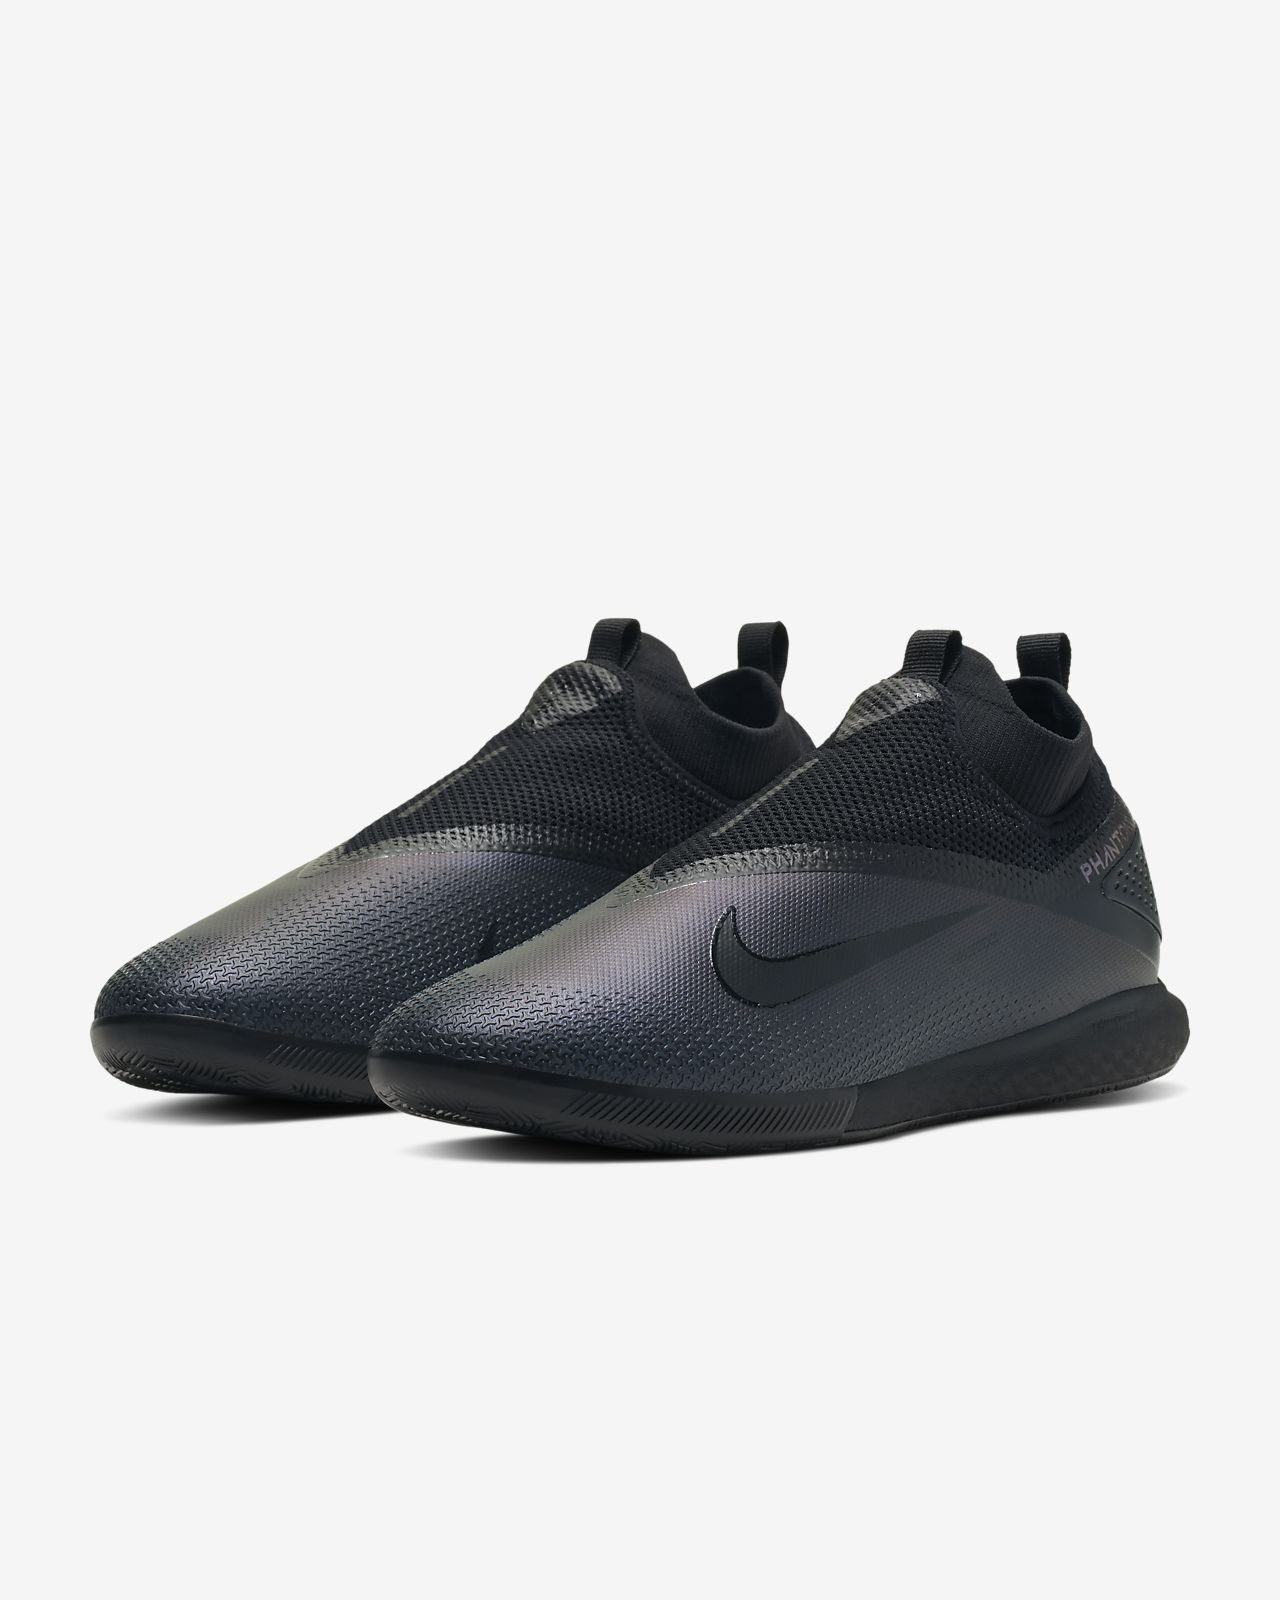 Sapatilhas de futsal Nike React Phantom Vision 2 Pro Dynamic Fit IC